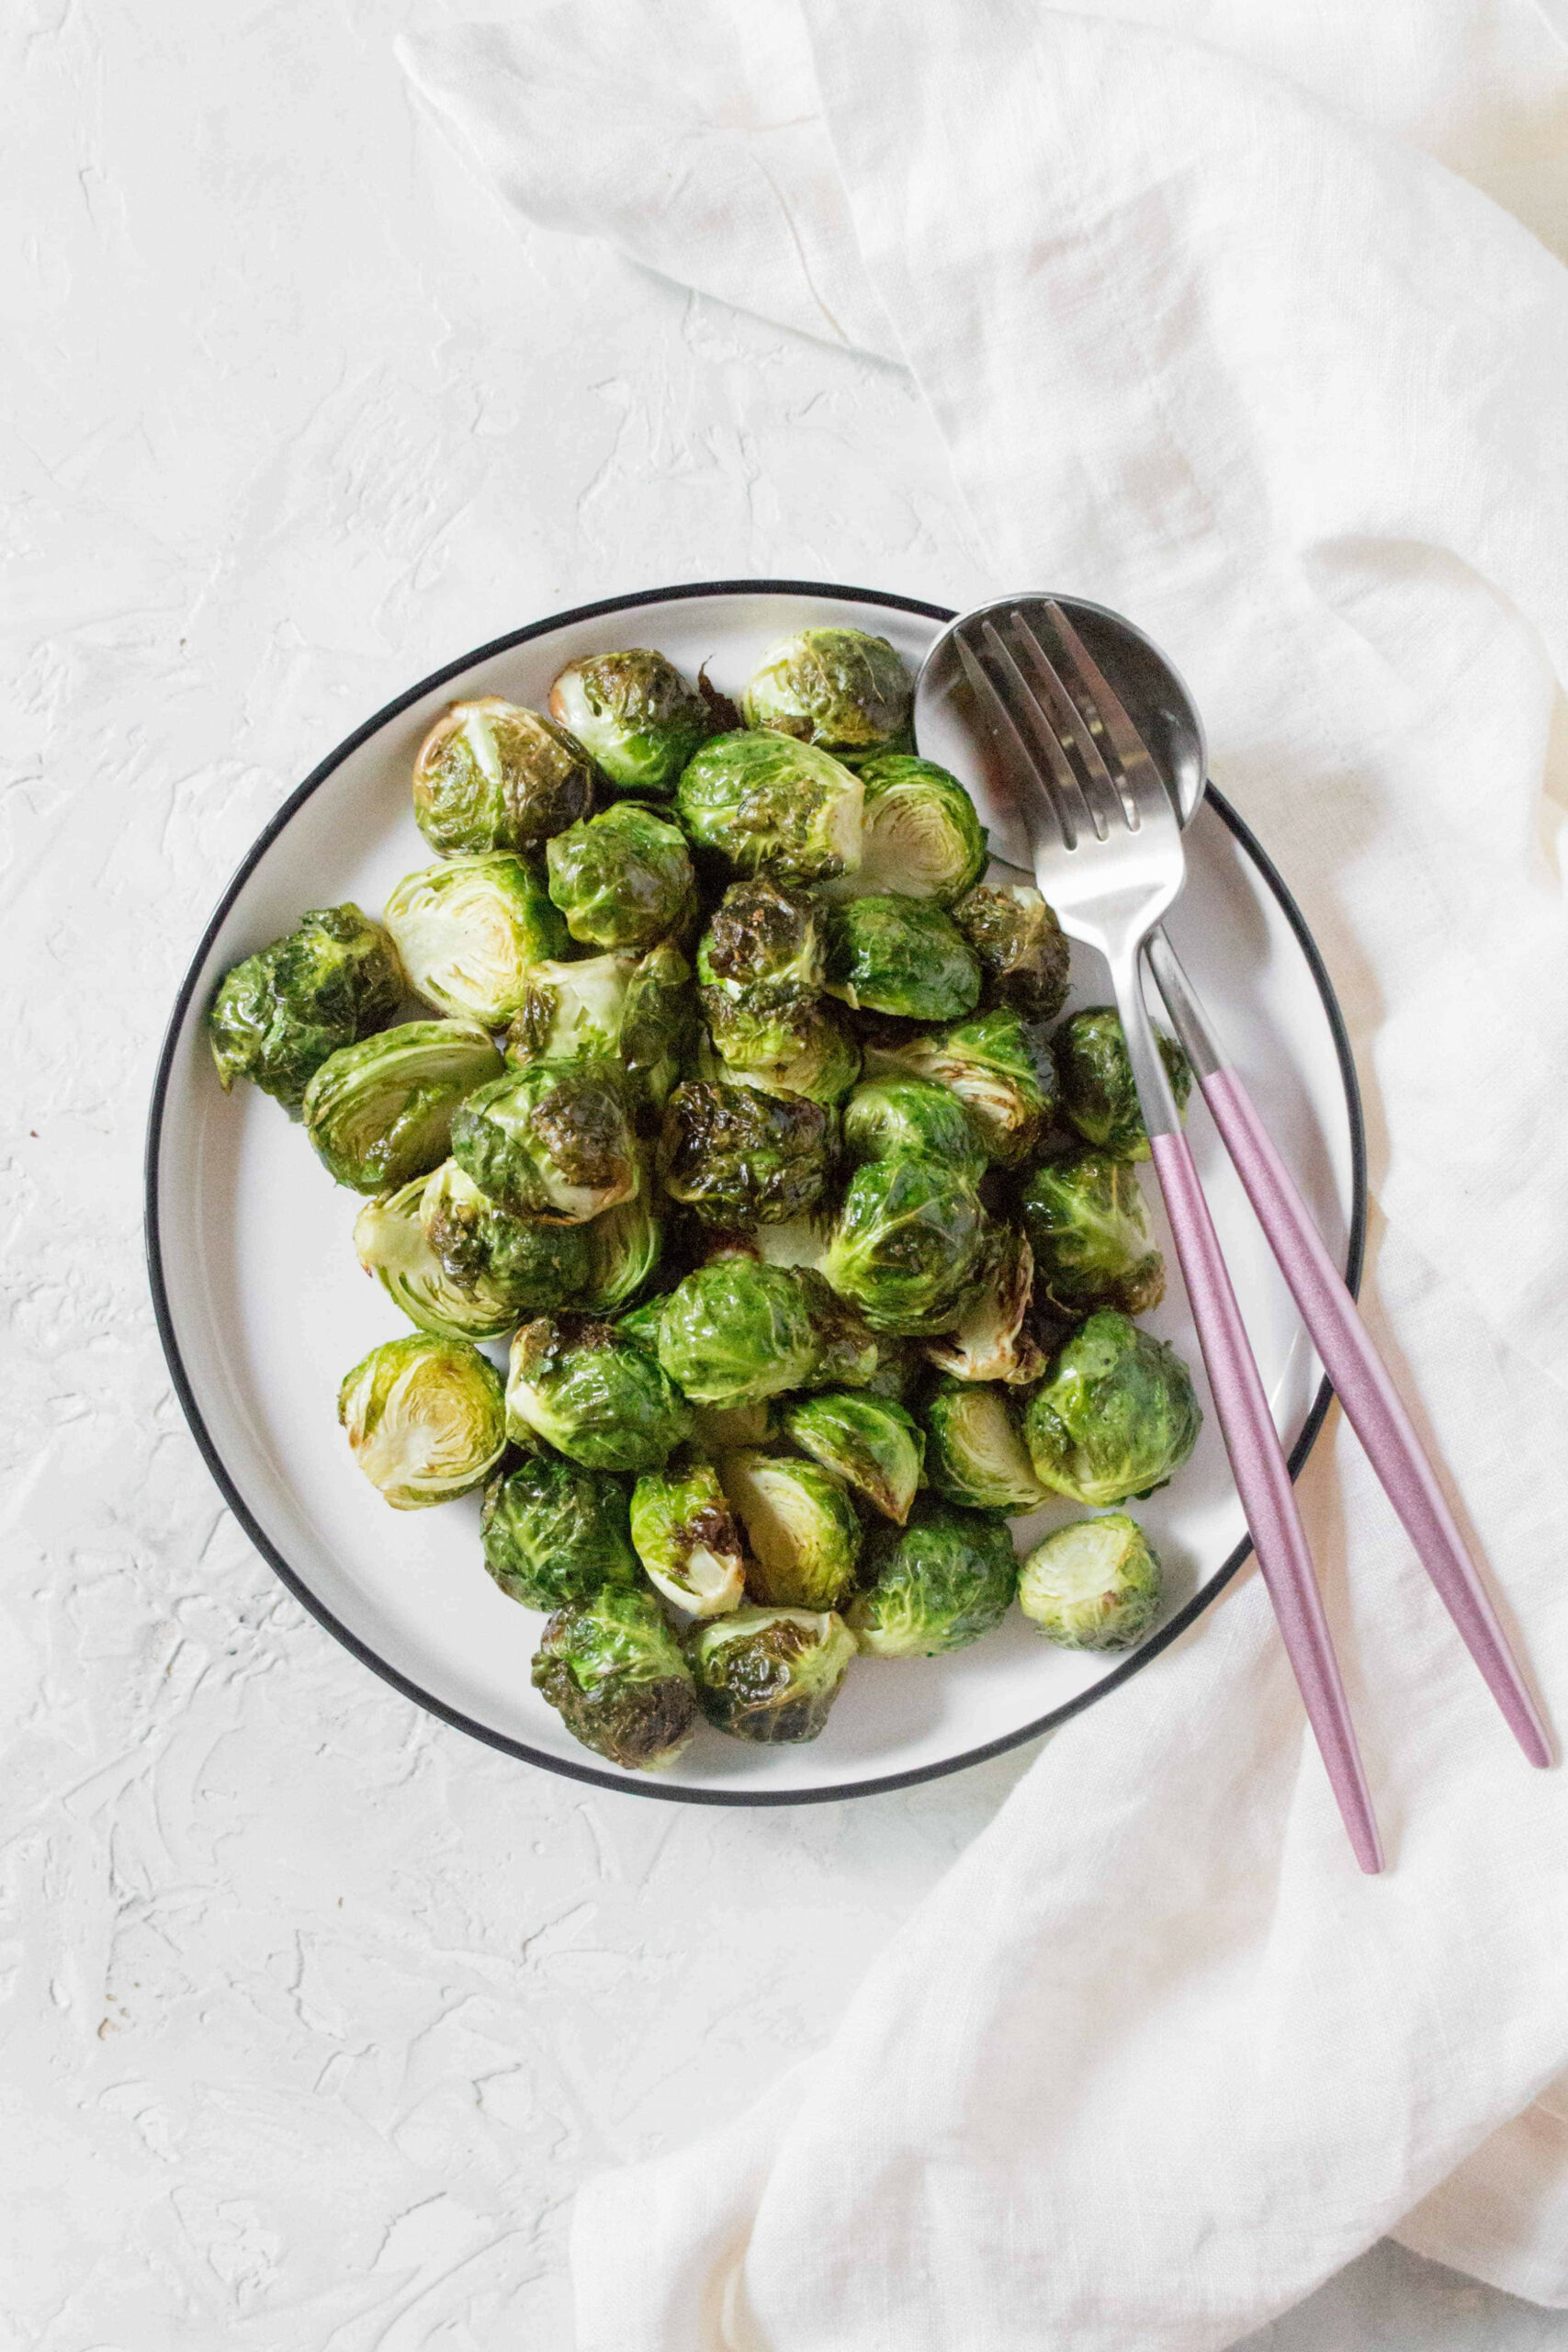 Crispy Air Fryer Brussel Sprouts - Carmy - Run Eat Travel - air fryer recipes vegetarian indian